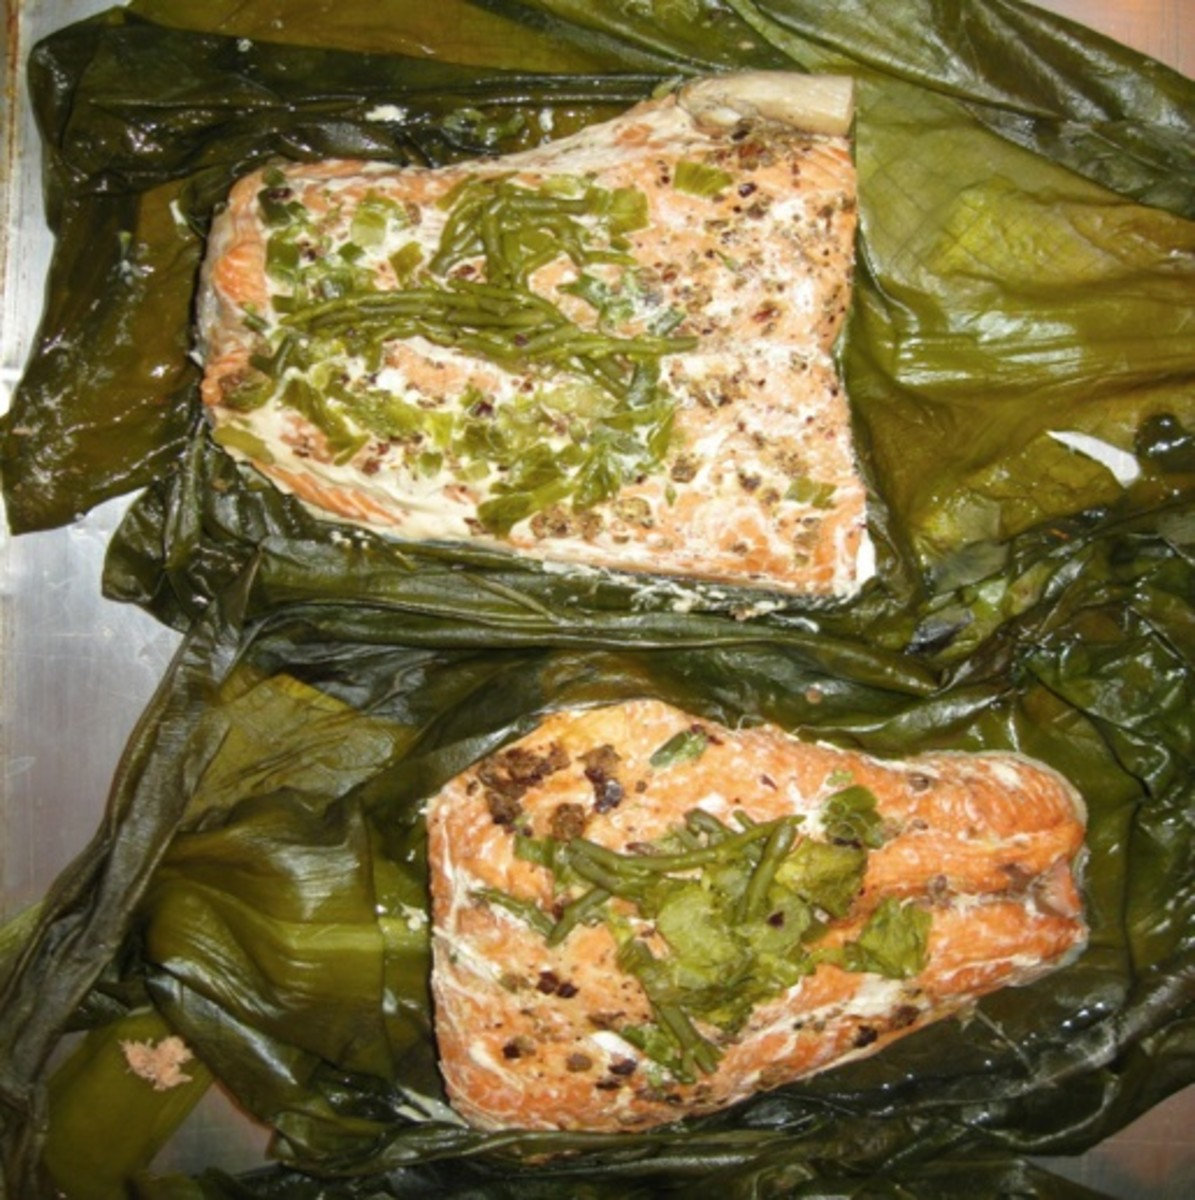 Salmon baked with wild celery, onion and skunk cabbage